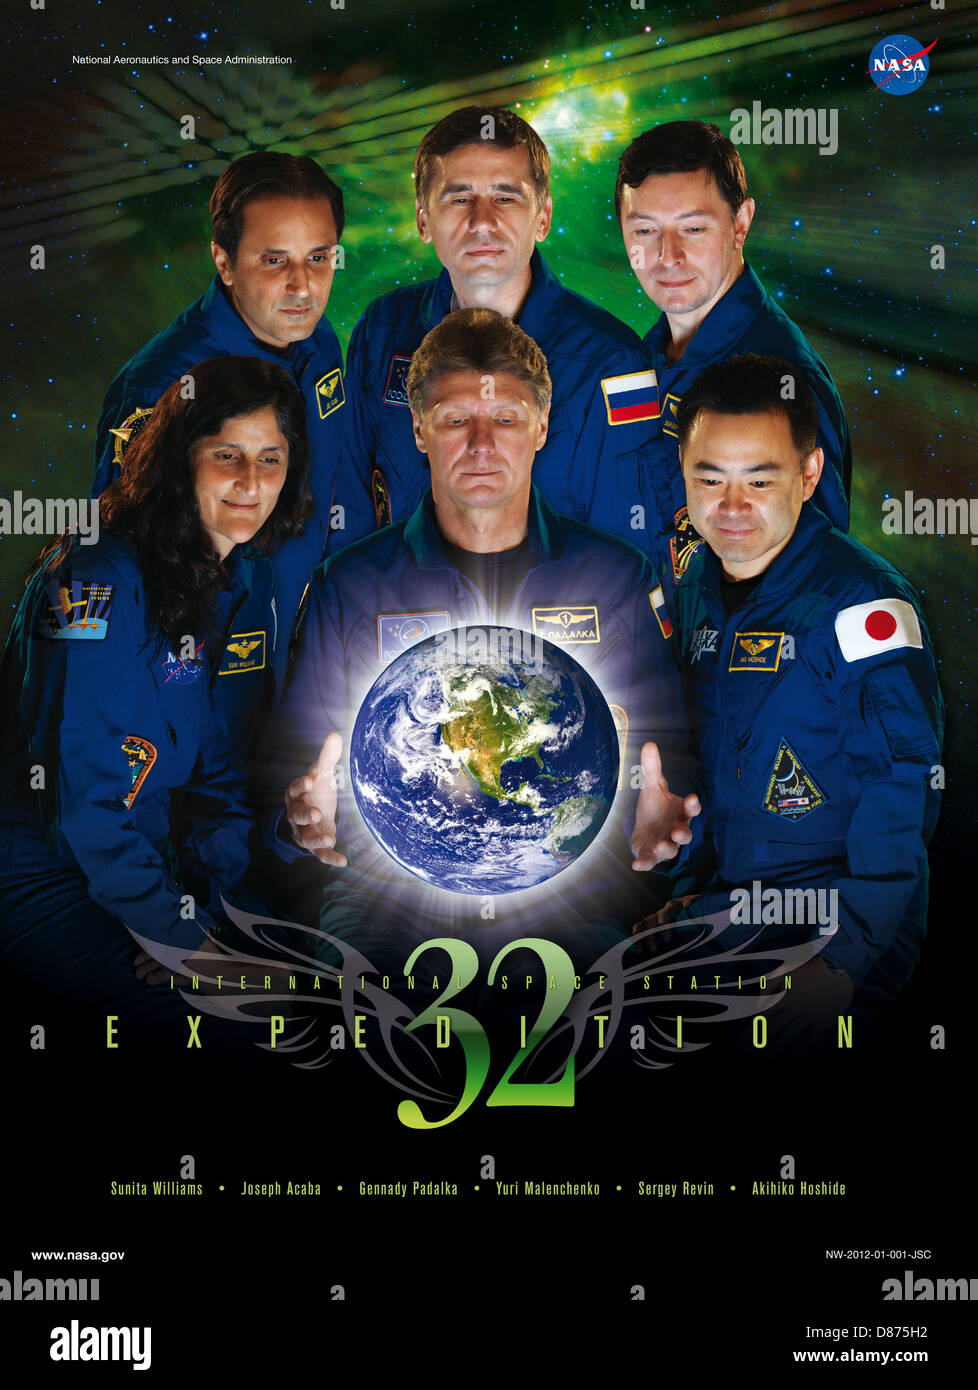 Expedition 32 crew poster.jpg - Stock Image